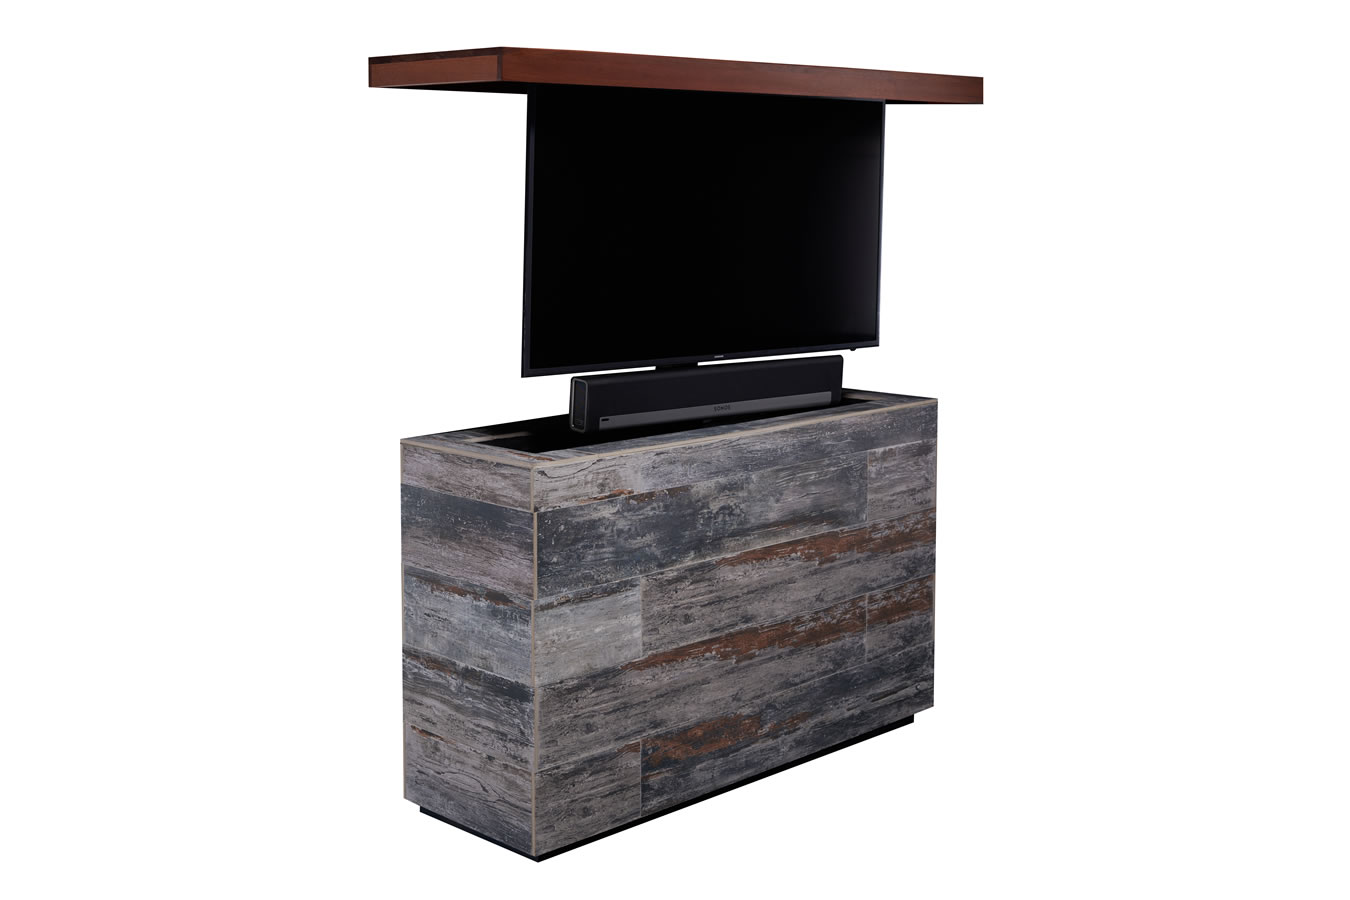 outdoor tv cabinet cumaru mamawood porcelain backyard tv lift. Black Bedroom Furniture Sets. Home Design Ideas